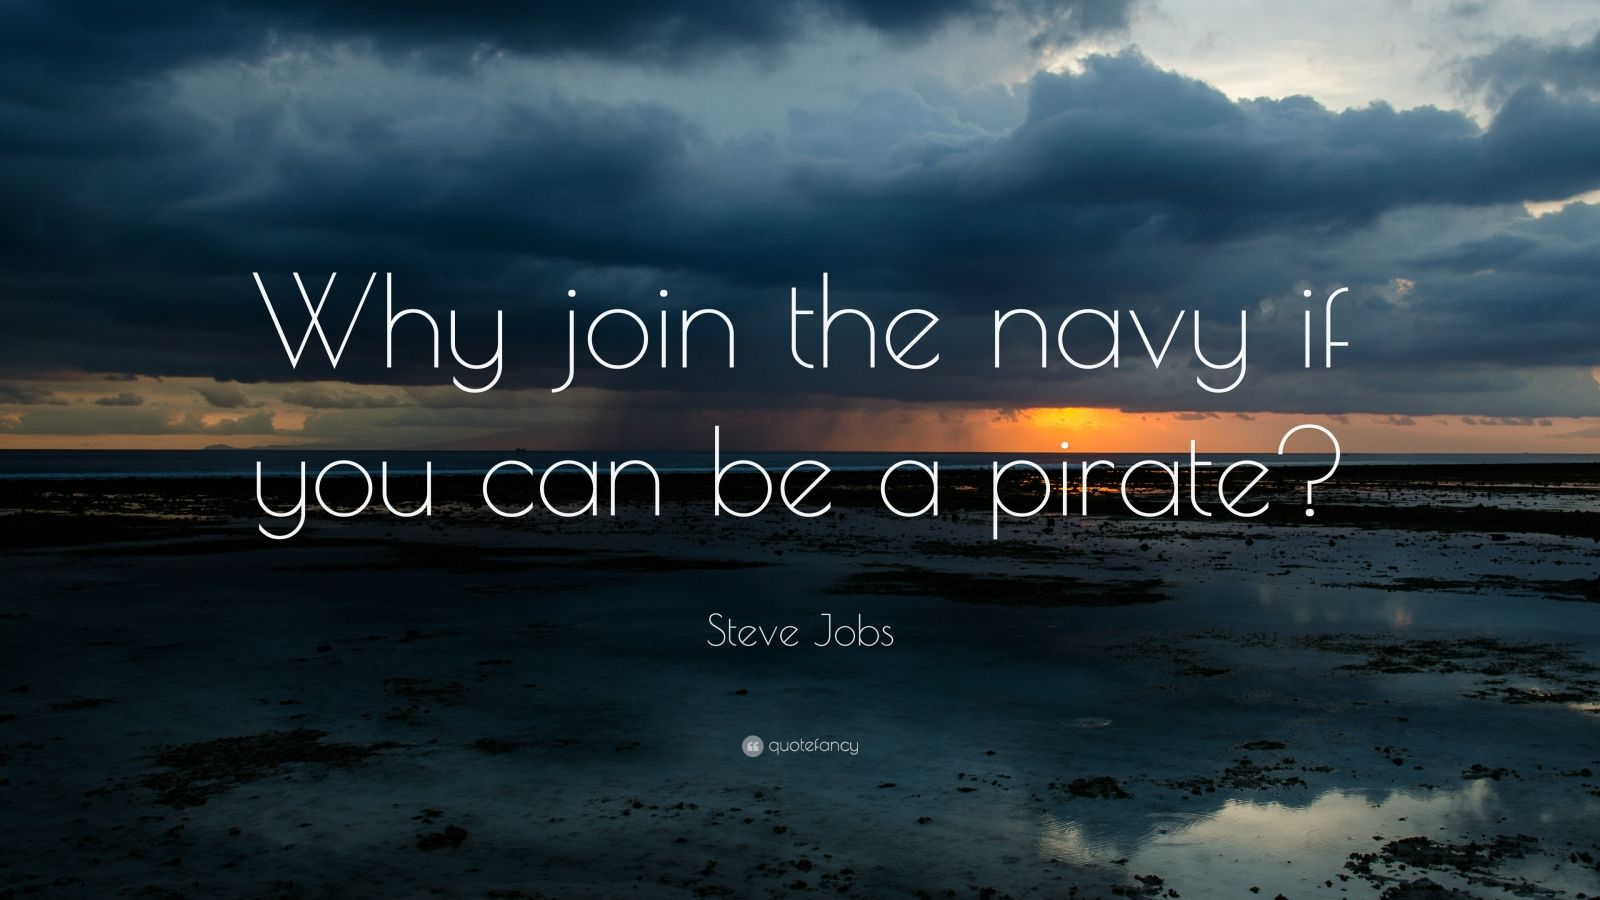 Fall Of Quotations Wallpapers Steve Jobs Quote Why Join The Navy If You Can Be A